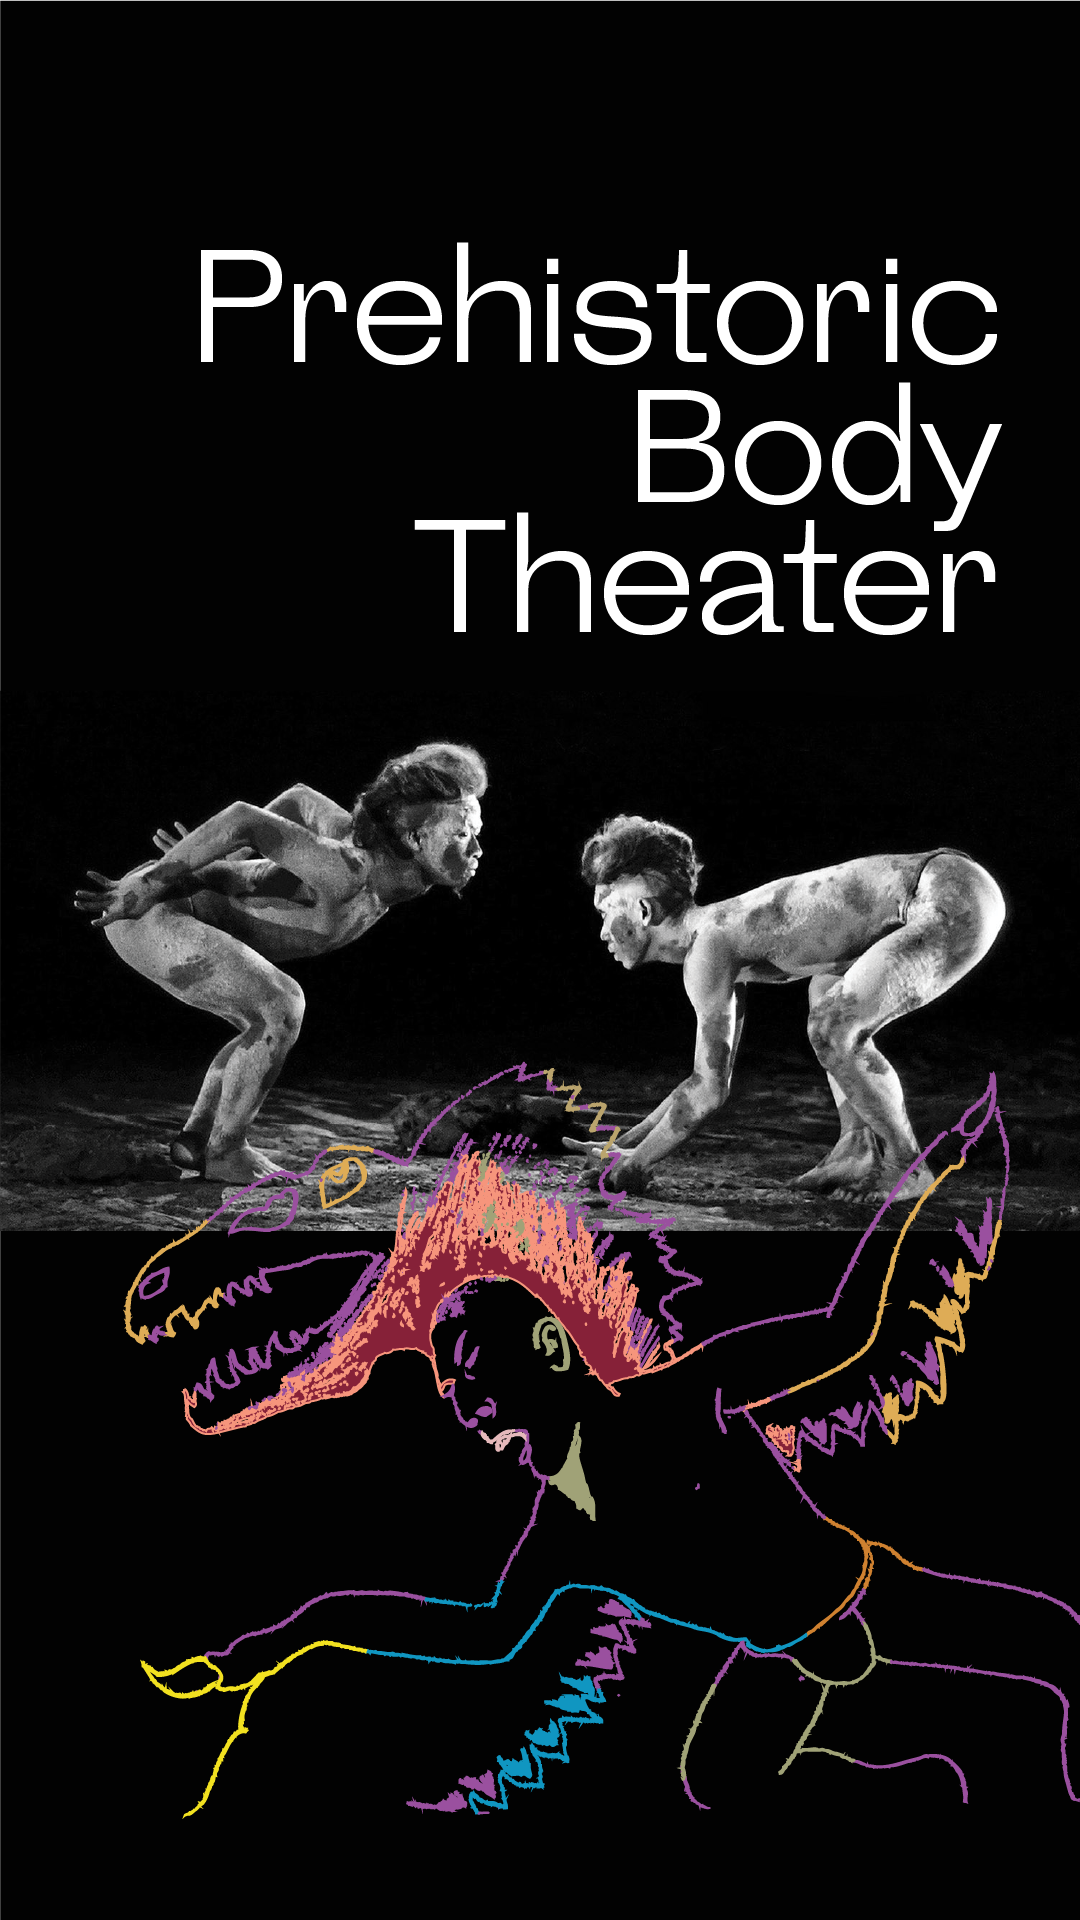 """Prehistoric Body Theater - Prehistoric Body Theater is an emerging performance company that presents paleontology and the evolutionary sciences through the medium of contemporary dance-theatre. These productions aim to educate and inspire diverse audiences by presenting an emotionally potent experience of Earth's prehistoric ecosystems and humanity's deep-time origin story. The central characters of these performances are specific vertebrate species from the fossil record.Under collaborative mentorship with leading paleontologists, artistic director Ari Rudenko generates choreography by mapping the theoretical locomotion and physiology of the featured prehistoric animals onto diverse ensembles of dancers. These animal characters and their evolutionary narratives are brought to life on stage through the evocative use of clay makeup, lighting, sound design, and set installation. Audiences describe their experience of watching Prehistoric Body Theater as """"a dive into a mysterious prehistoric past evoking such empathy for all that has come before us""""."""